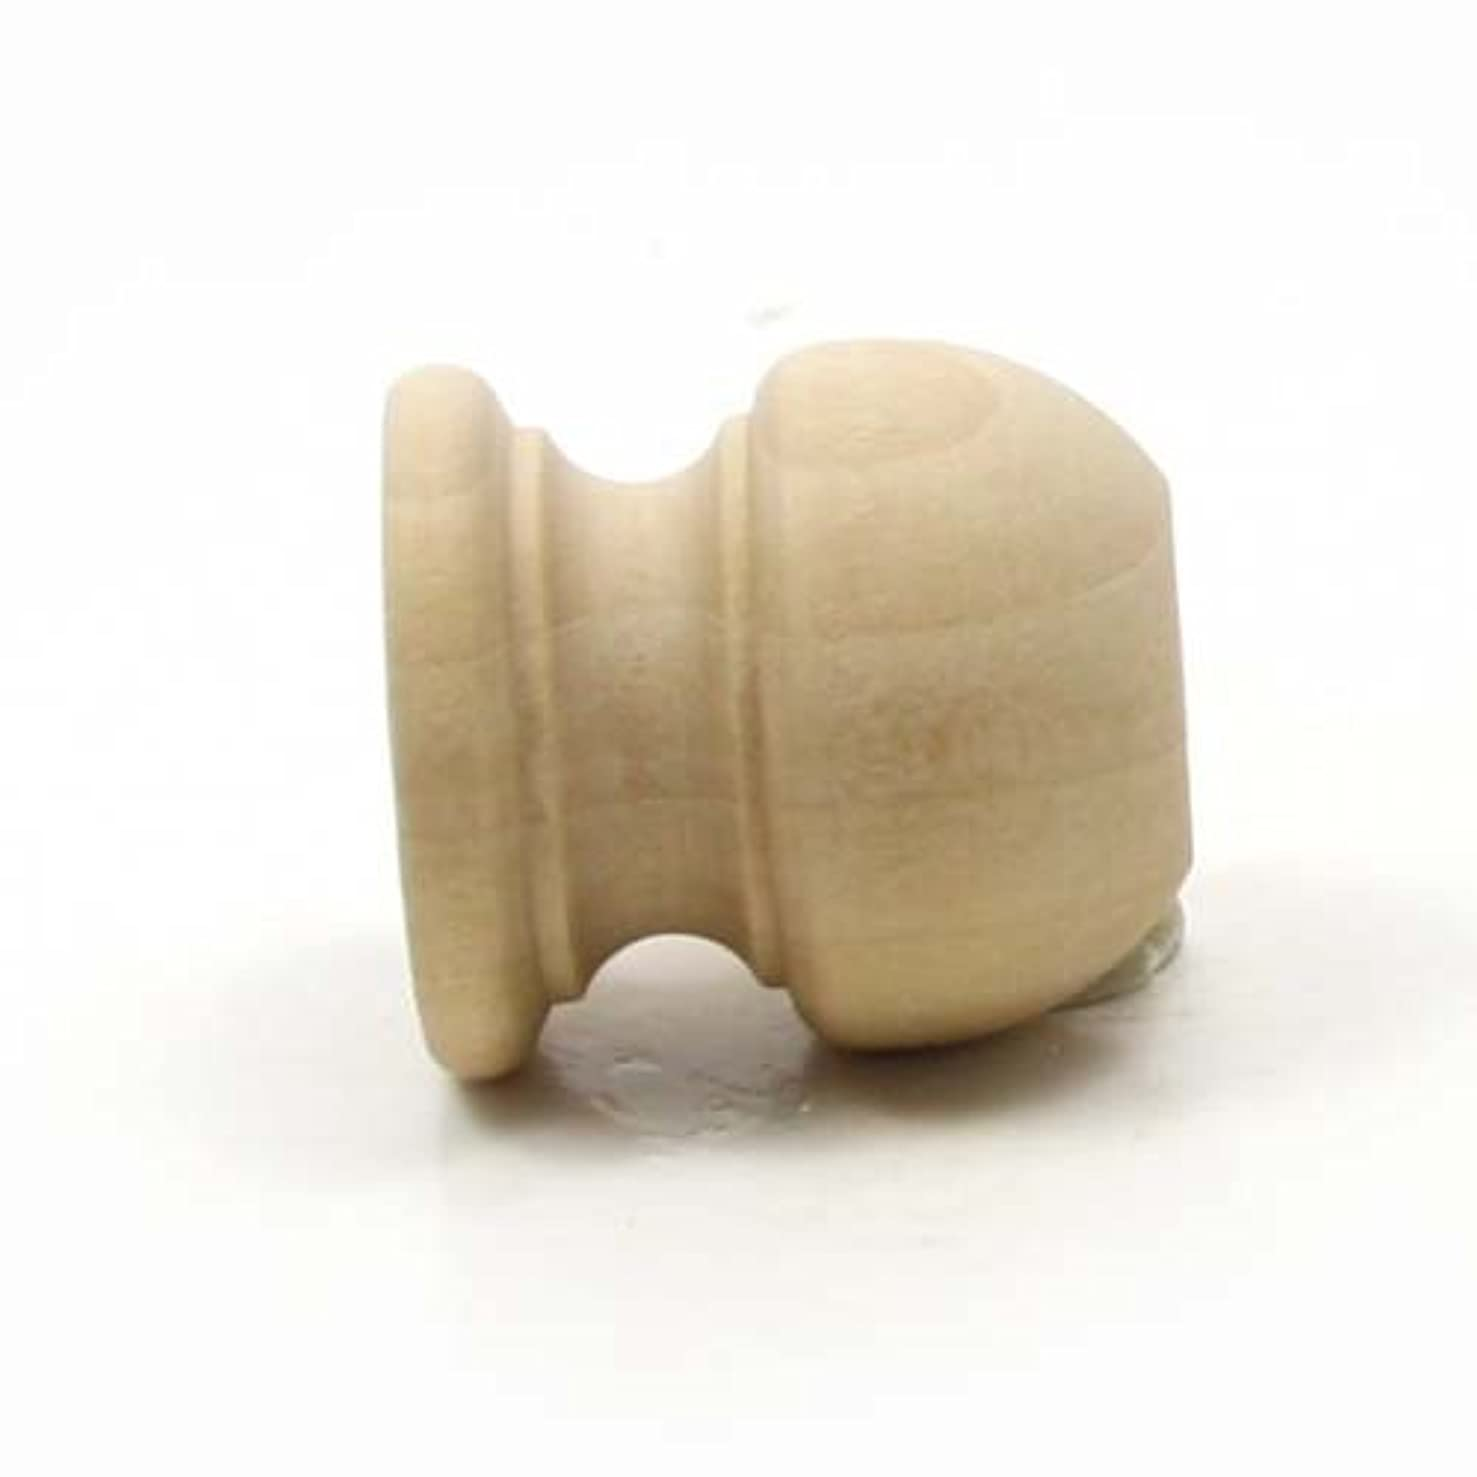 Mylittlewoodshop Pkg of 6 - Finial Dowel Cap - 1-1/16 tall with 1/2 inch hole unfinished wood (WW-DC8005-6)